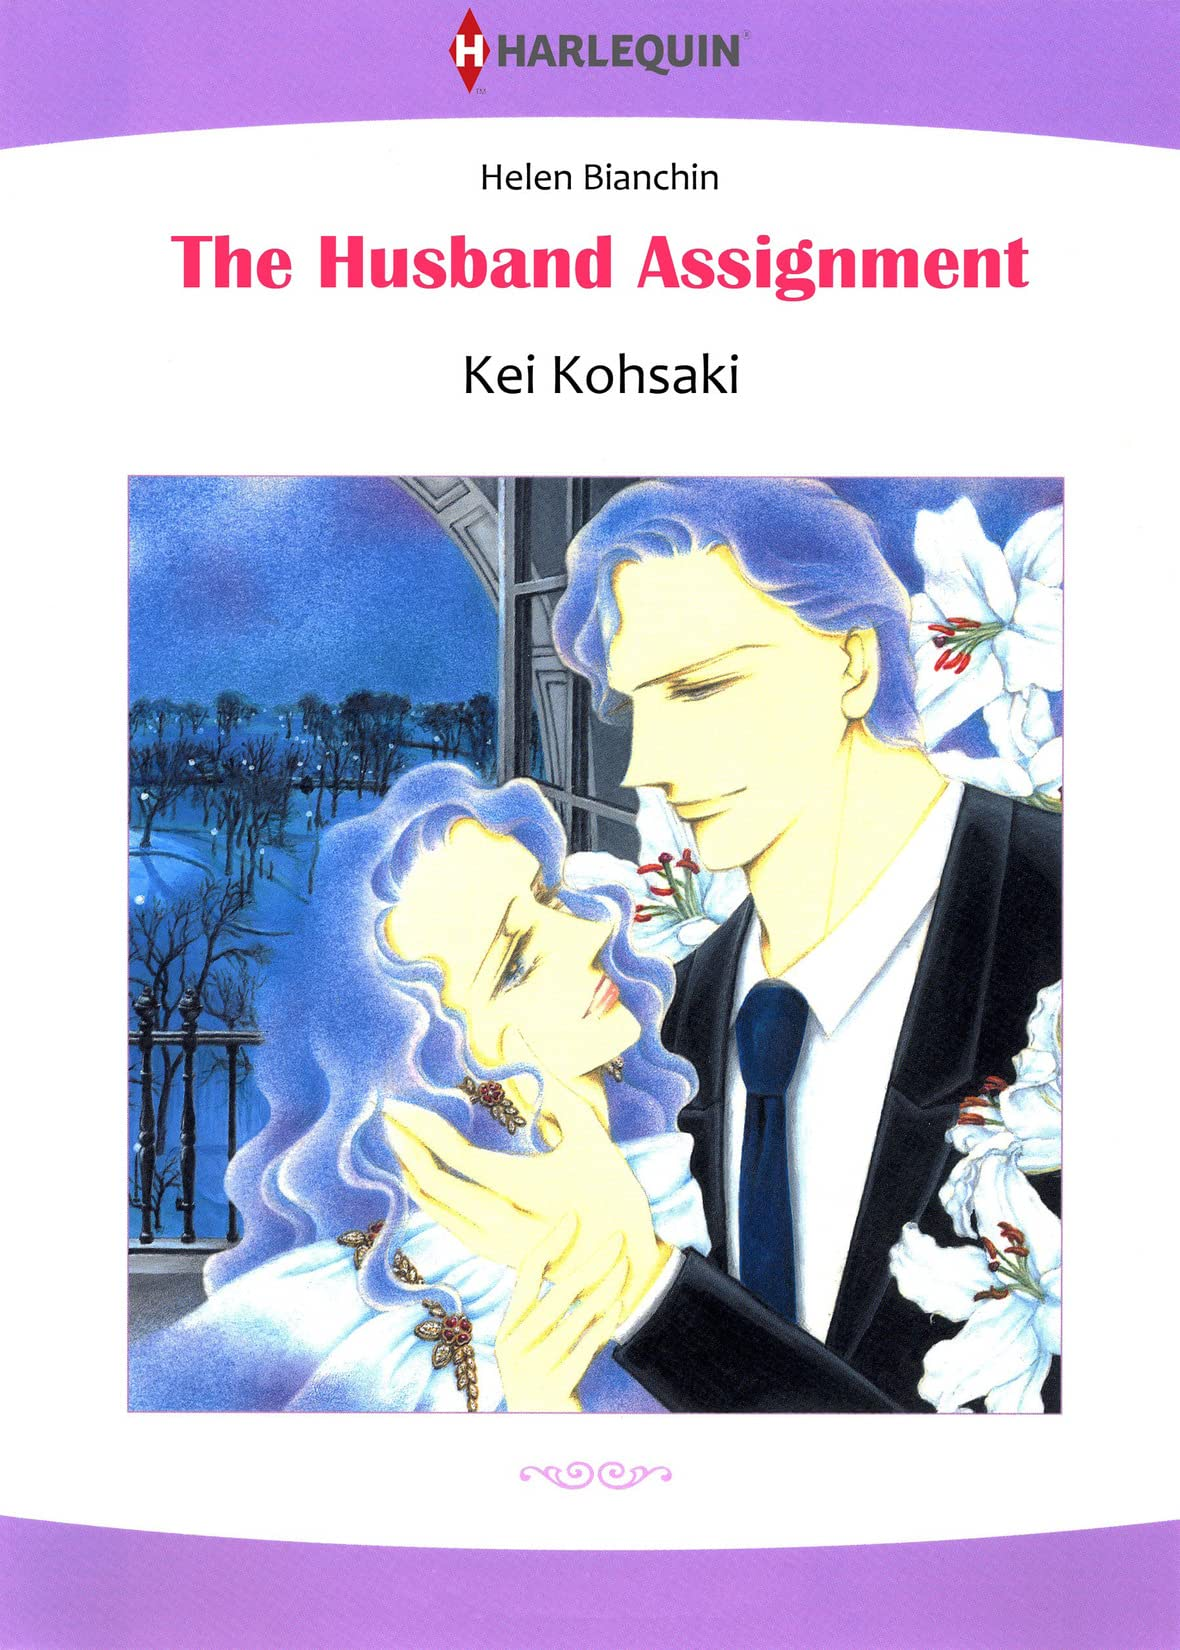 The Husband Assignment